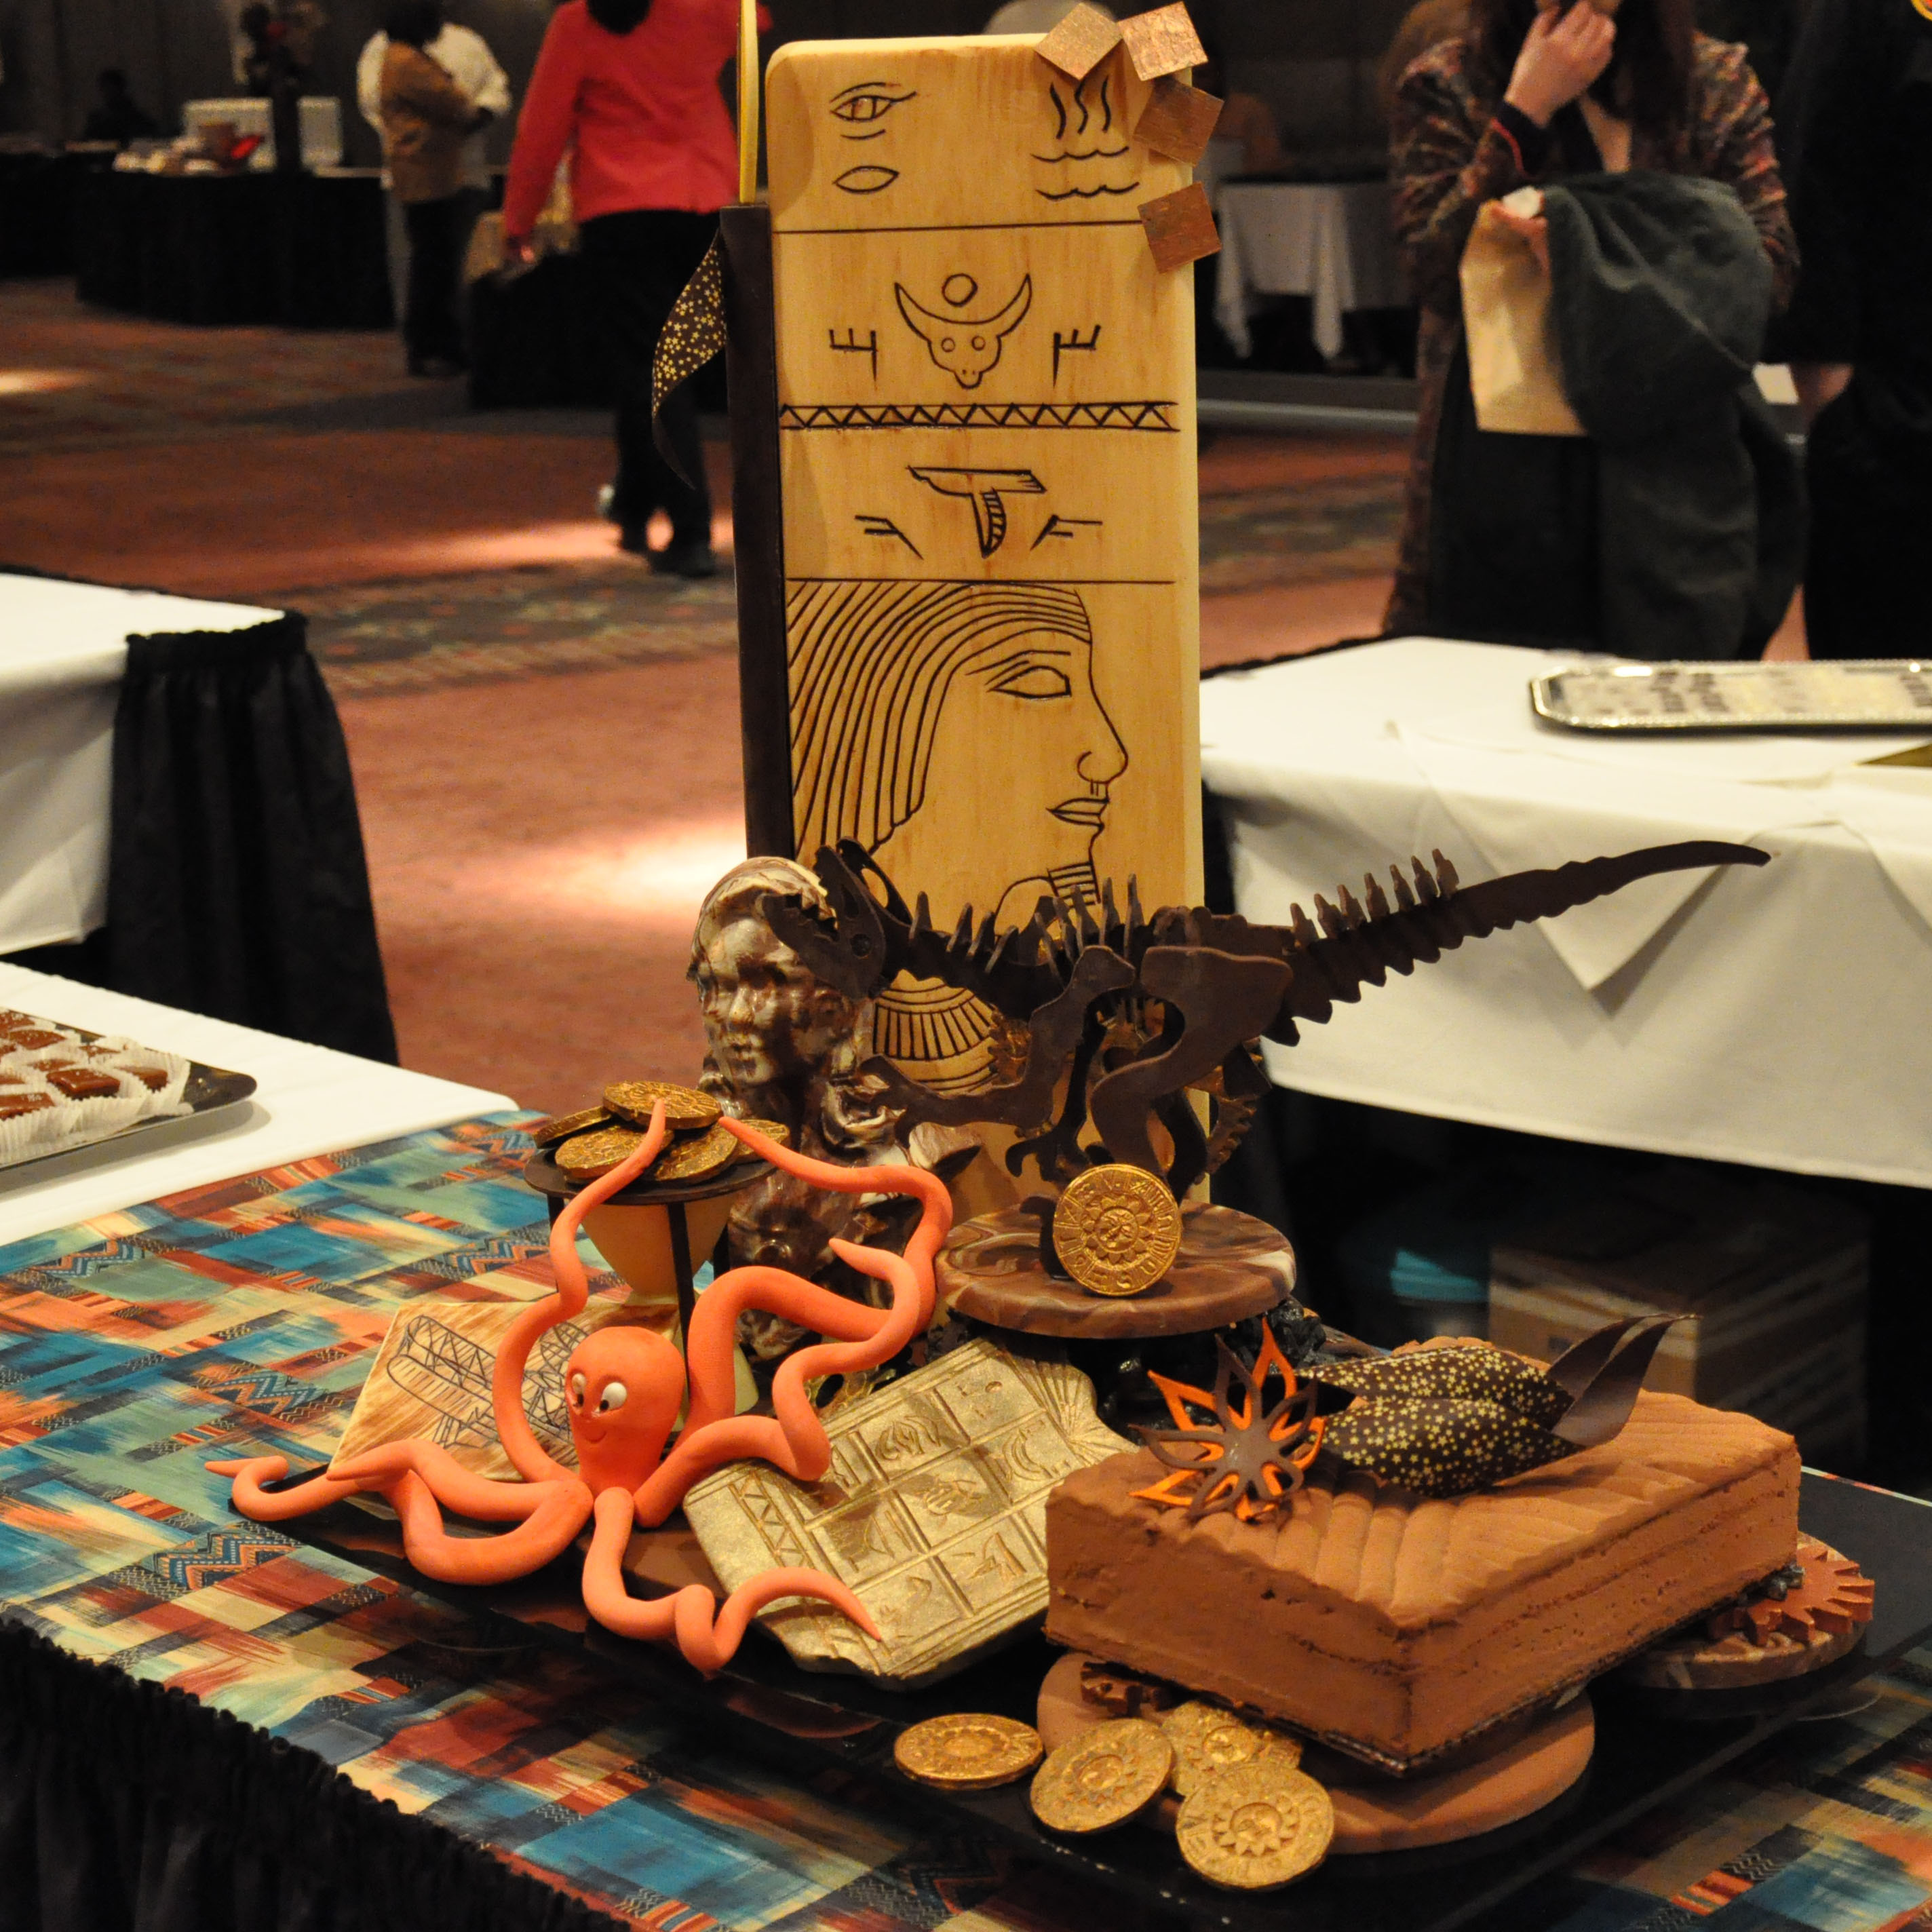 Ornate edible chocolate sculpture of ancient relics, gold coins set on display at a dessert competition